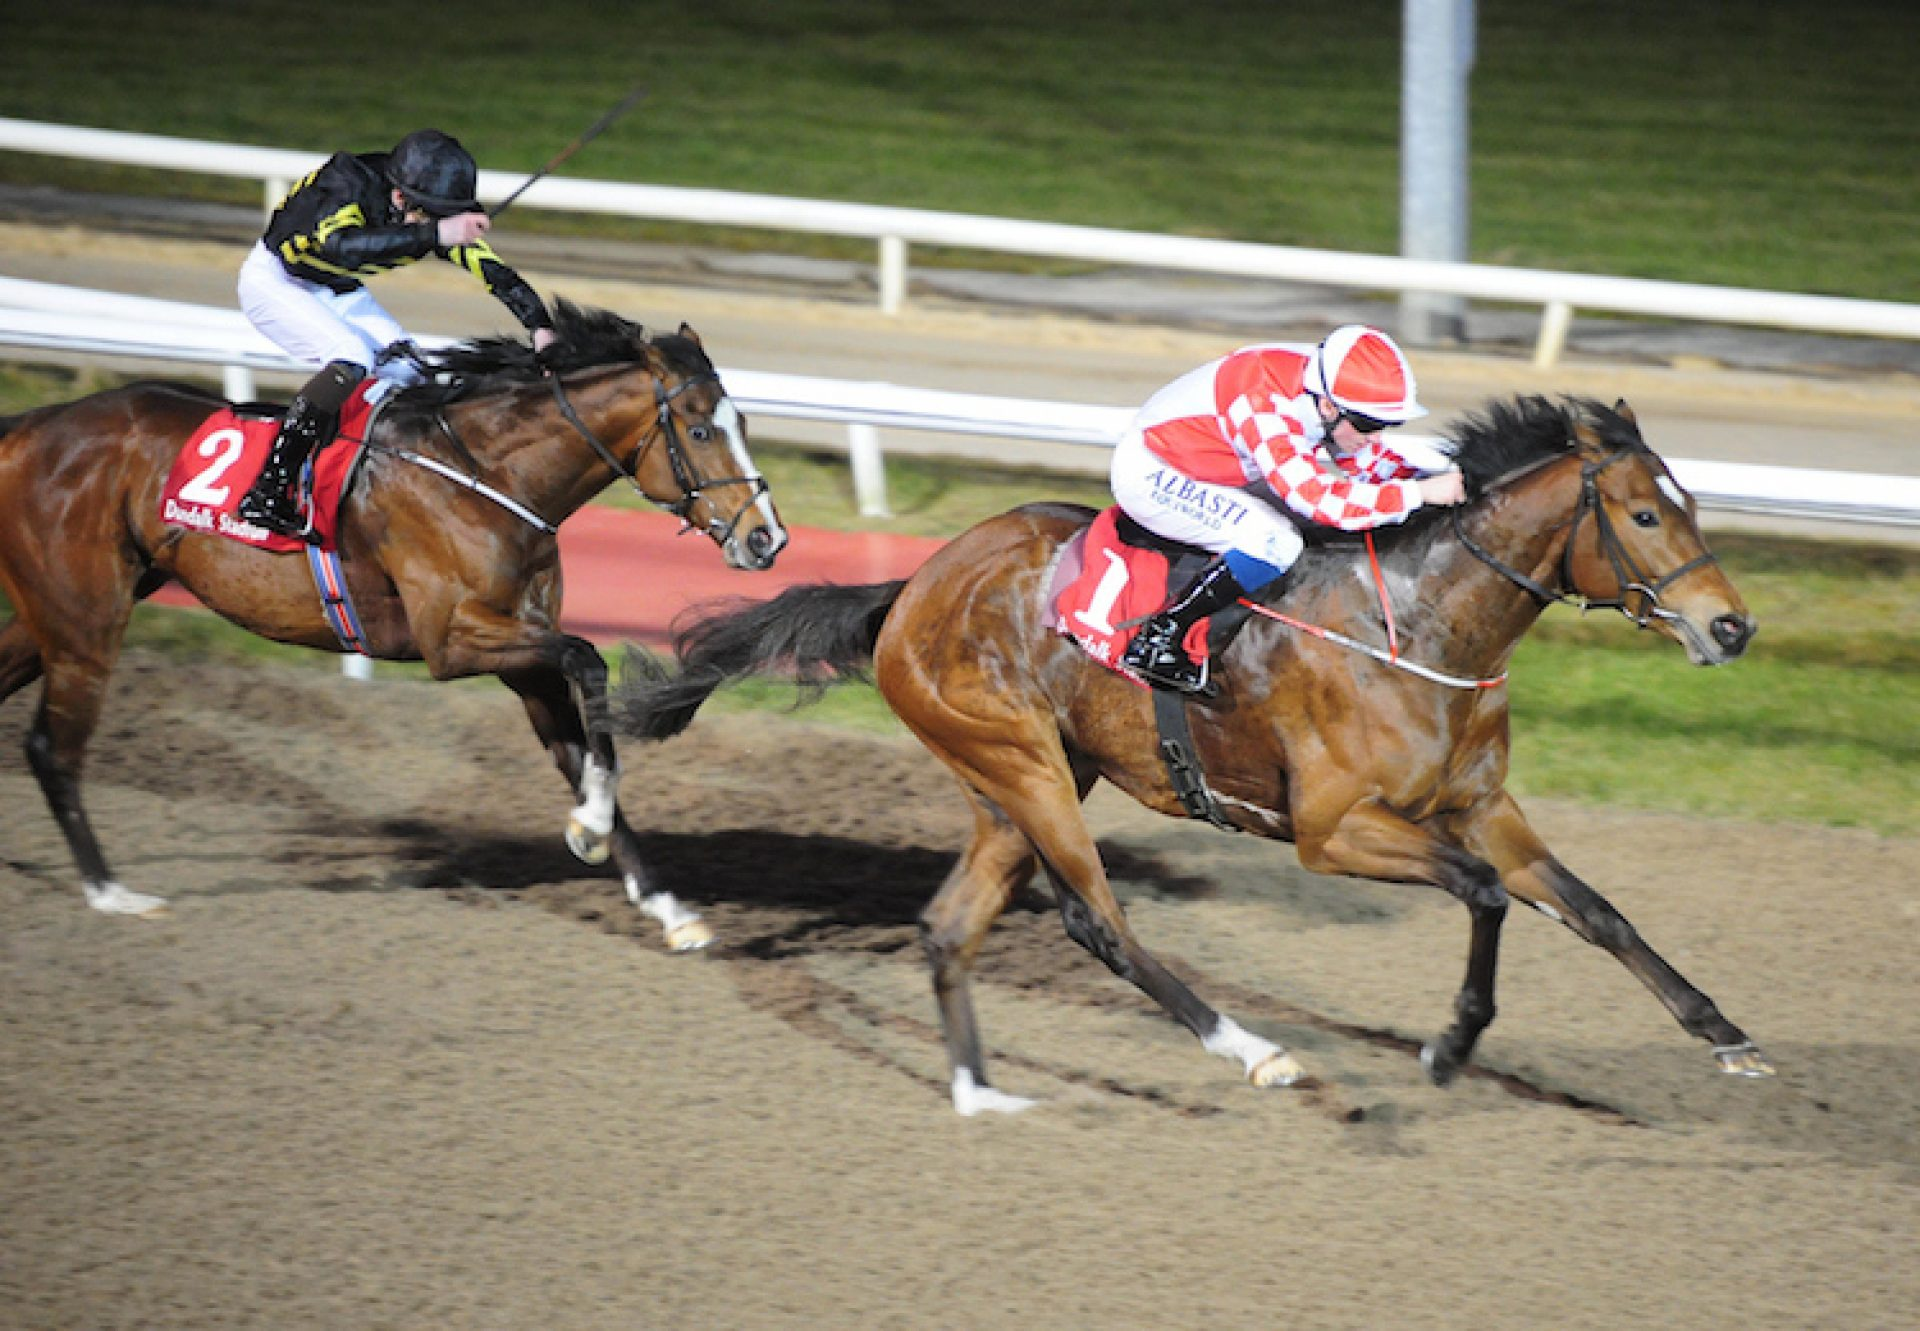 Zihba (Choisir) winning at Dundalk